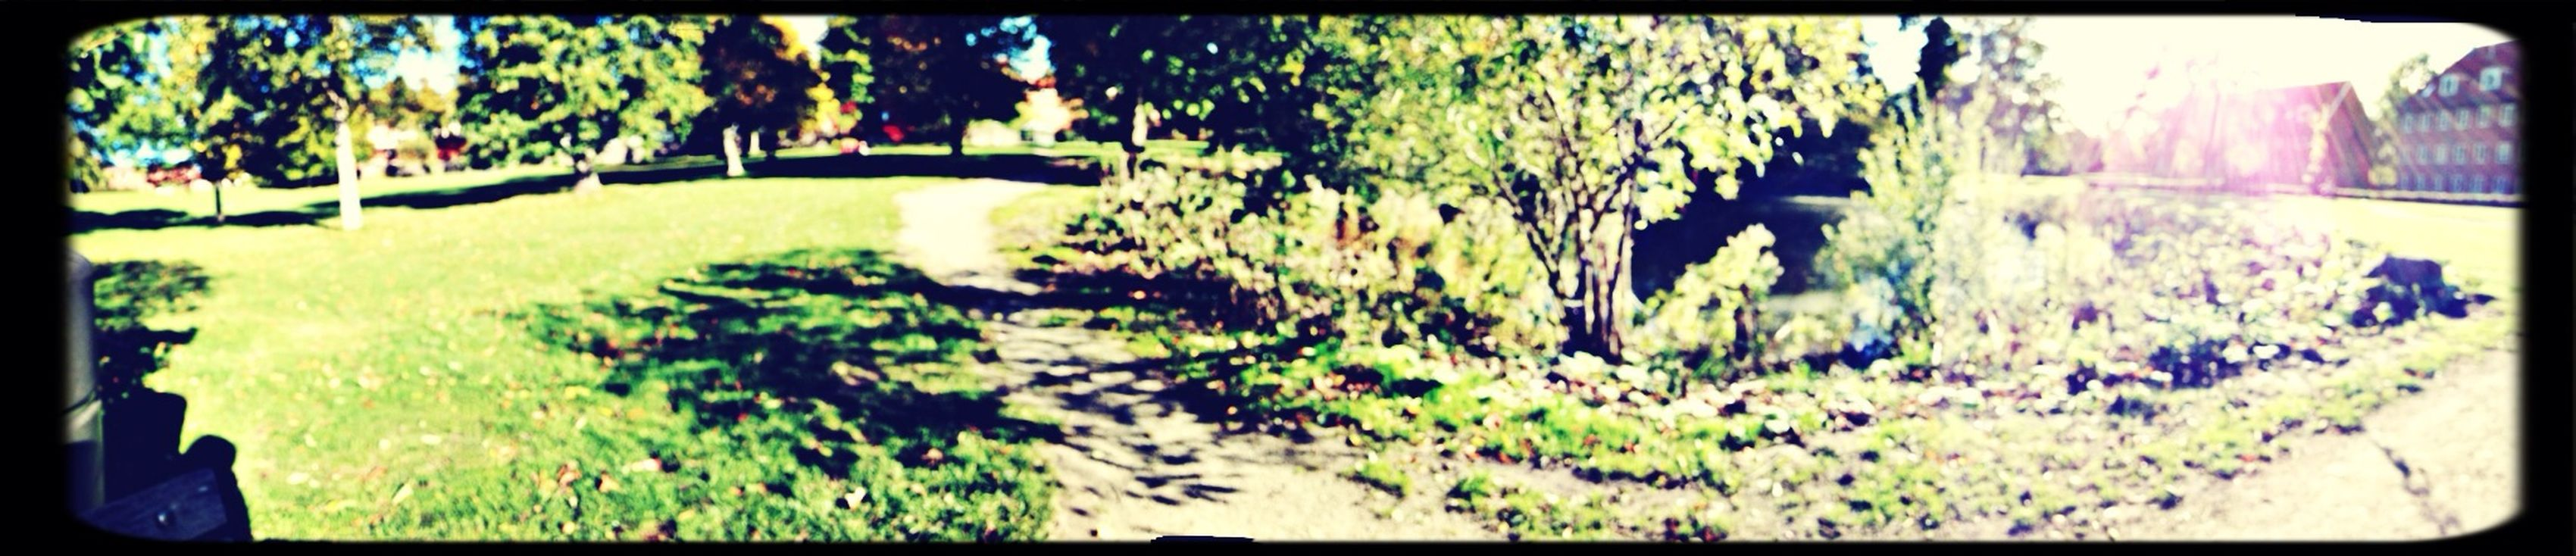 chil in one of the last summer days! :-P